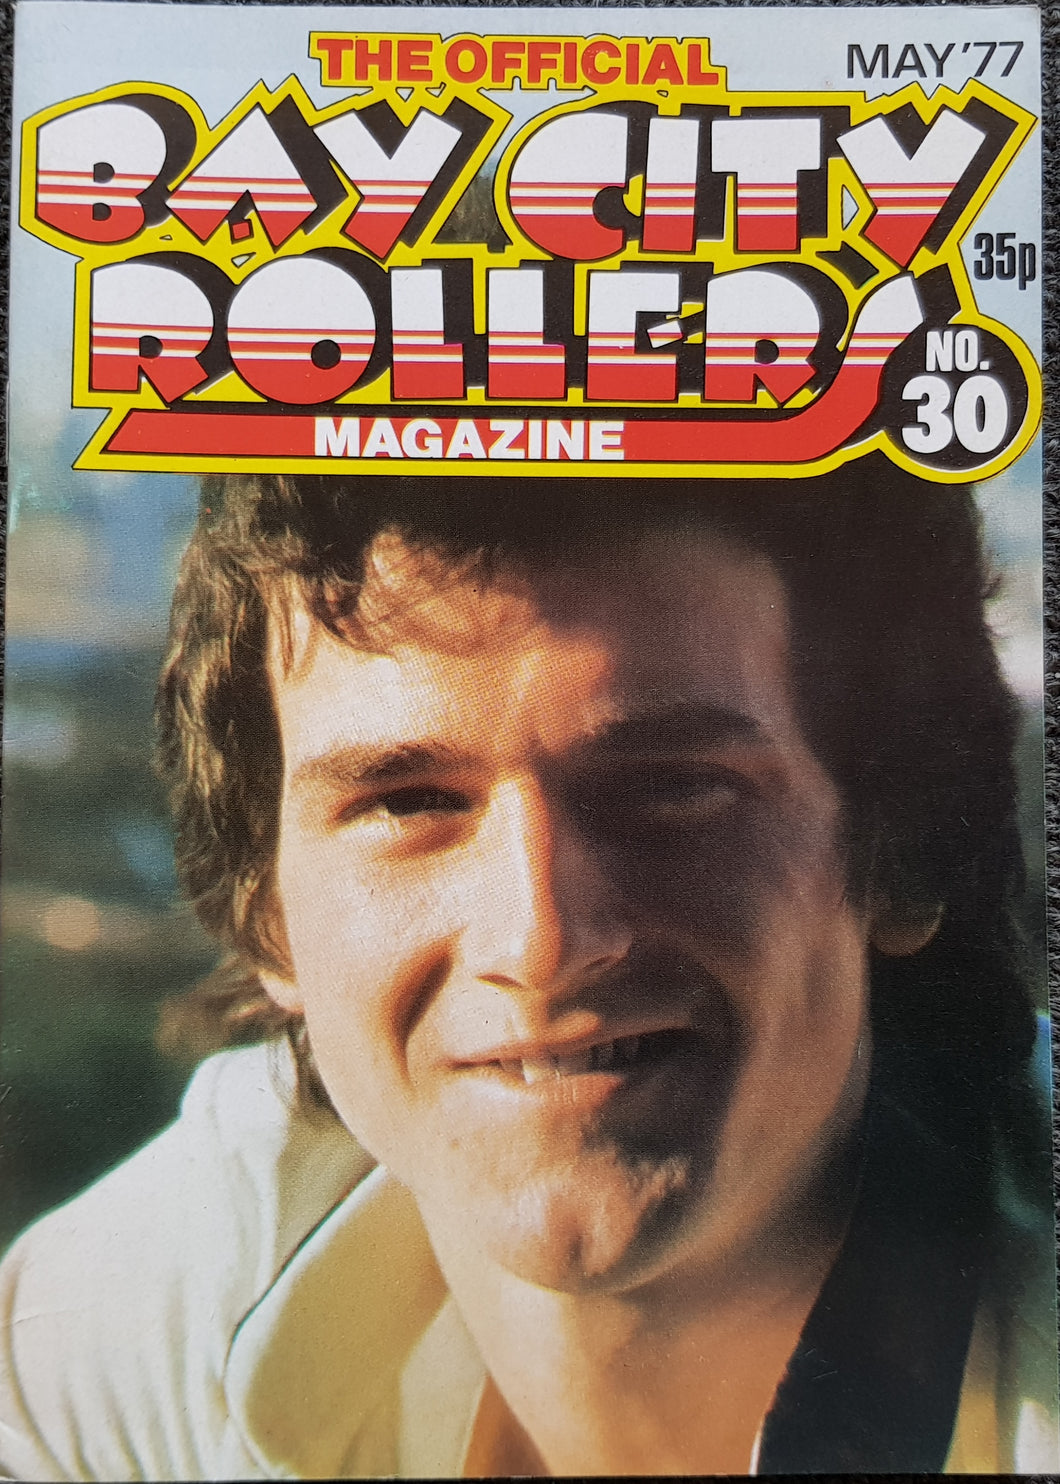 Bay City Rollers - The Official Bay City Rollers Magazine No.30